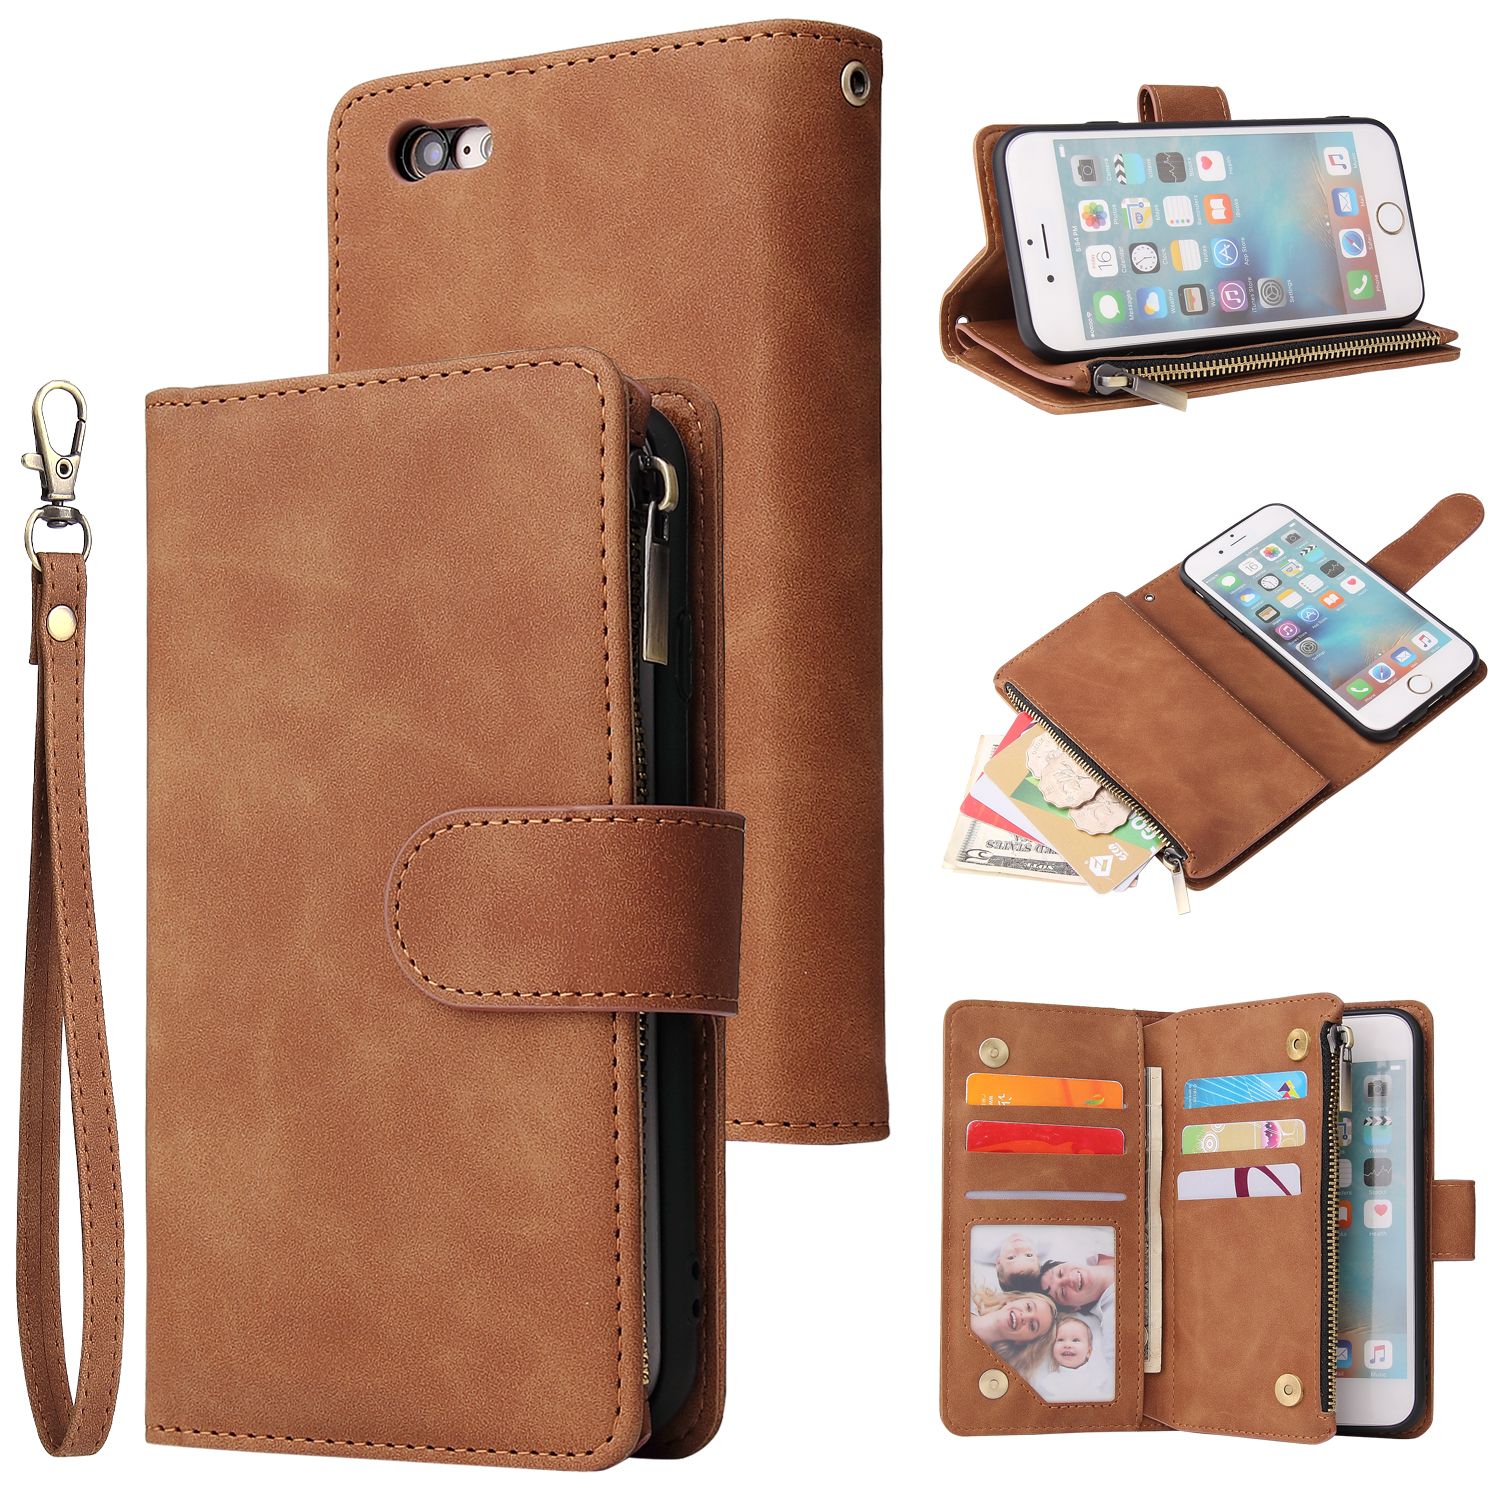 For iPhone 6 / 6S iPhone 6 plus / 6S plus iPhone 7 / 8 iPhone 7 plus / 8 plus Smart Phone Cover Coin Pocket with Cards Bracket Zipper Phone PU Leather Case Phone Cover  iPhone 6 plus / 6S plus